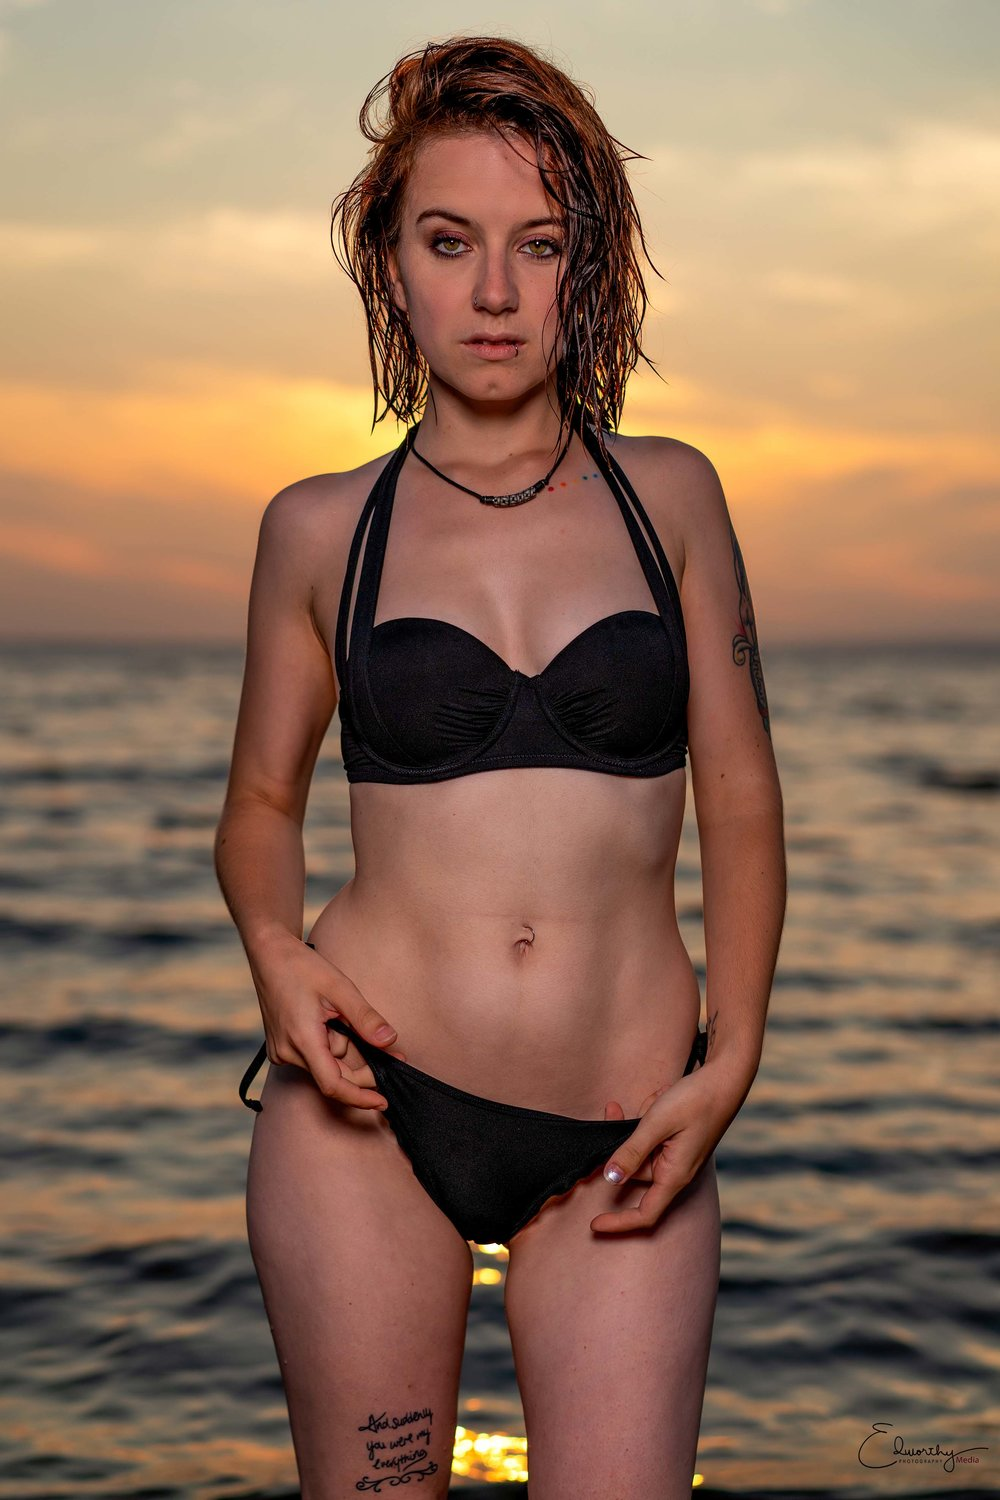 Bikini Sunset shoot